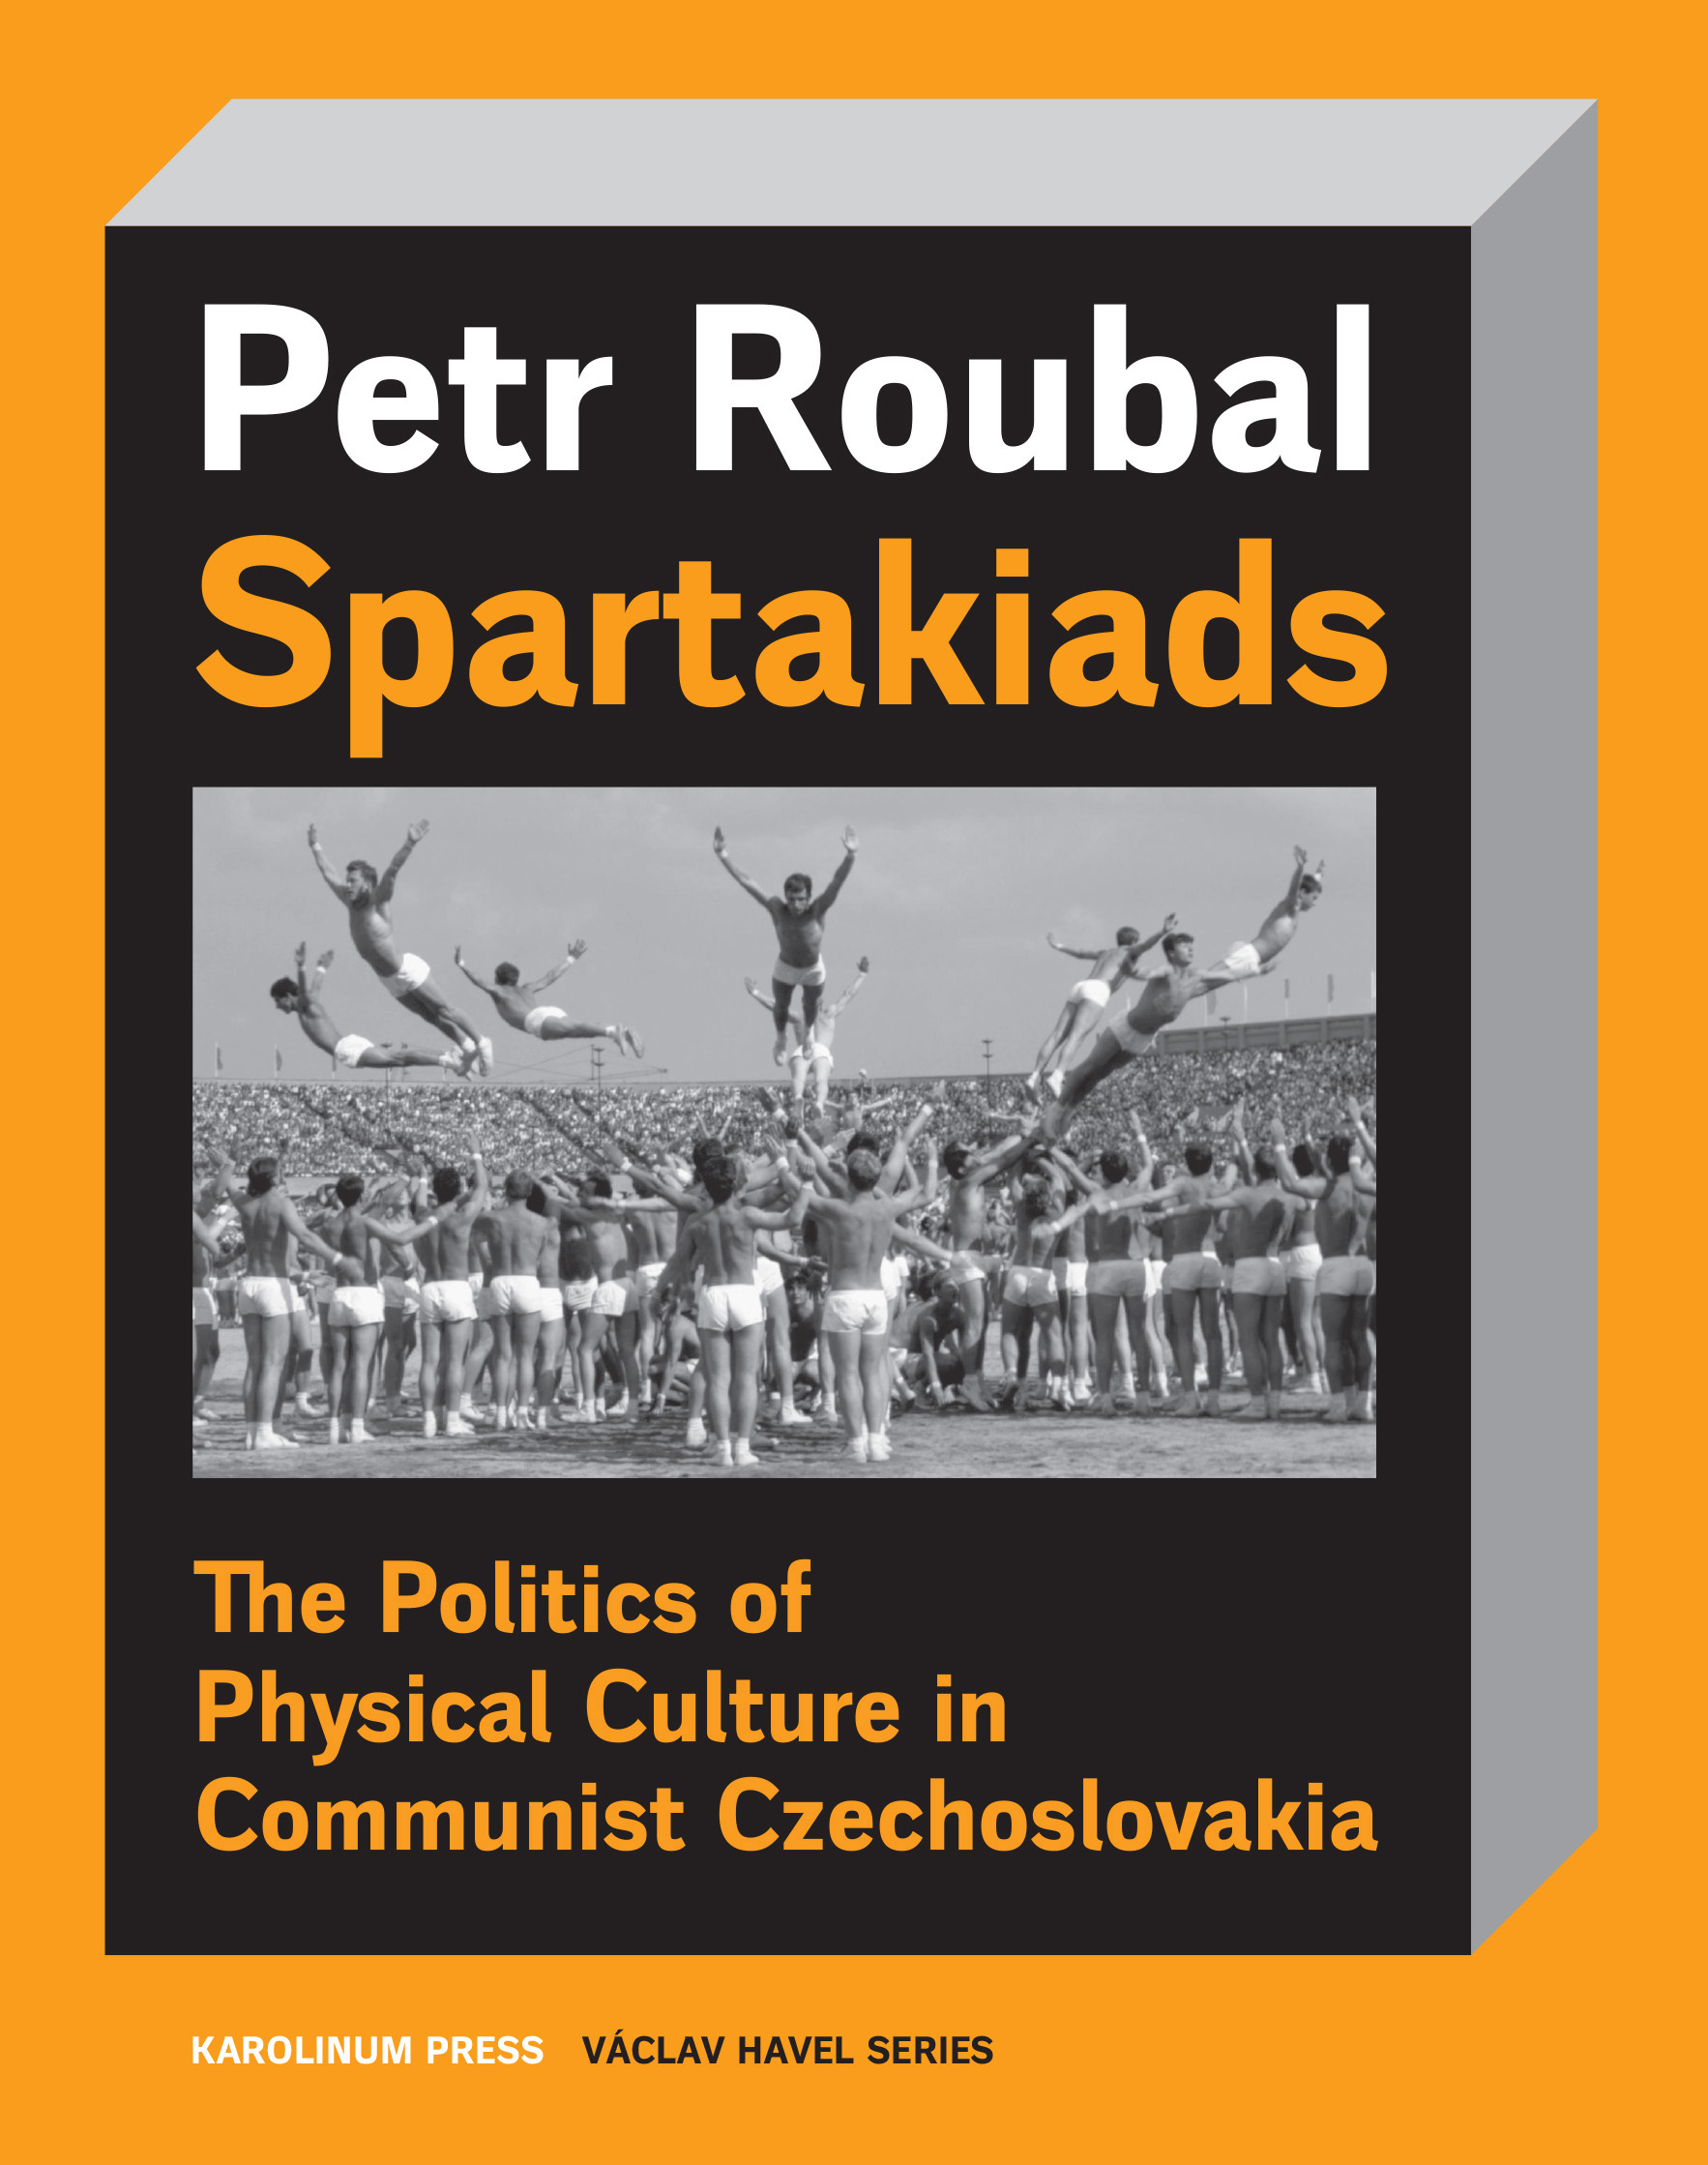 Spartakiads: The Politics and Aesthetics of Physical Culture in Communist Czechoslovakia